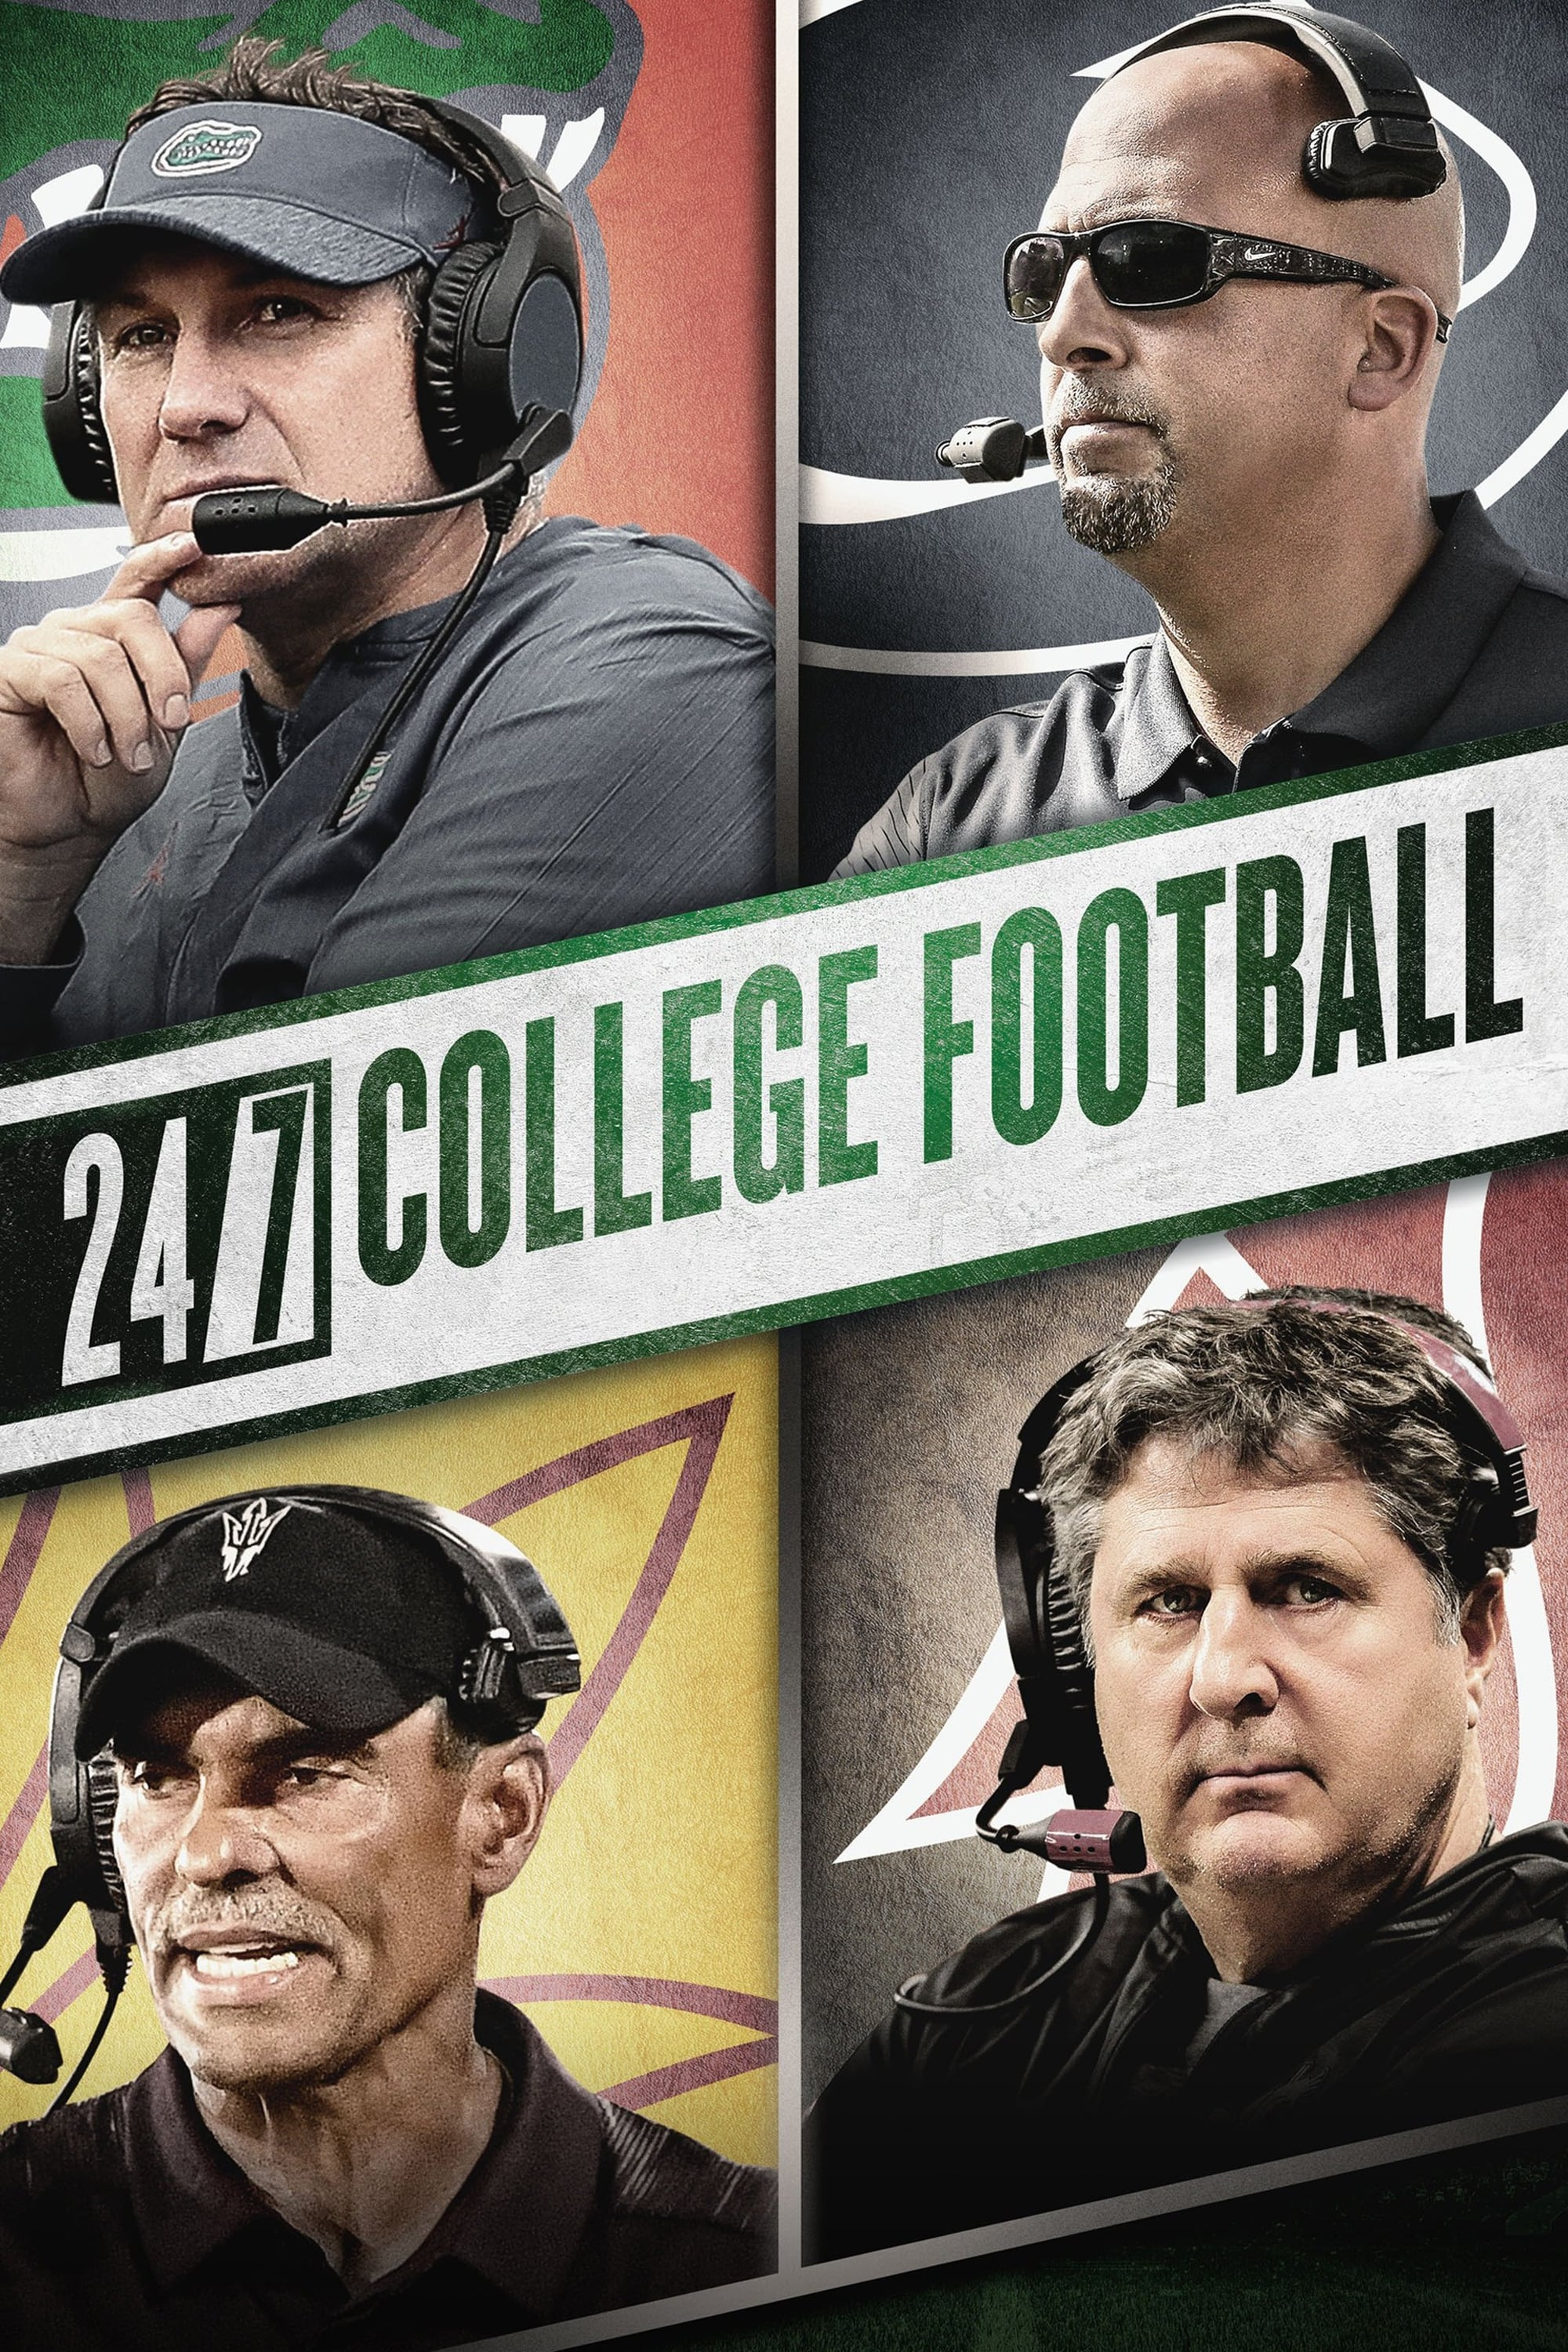 24/7 College Football TV Shows About American Football